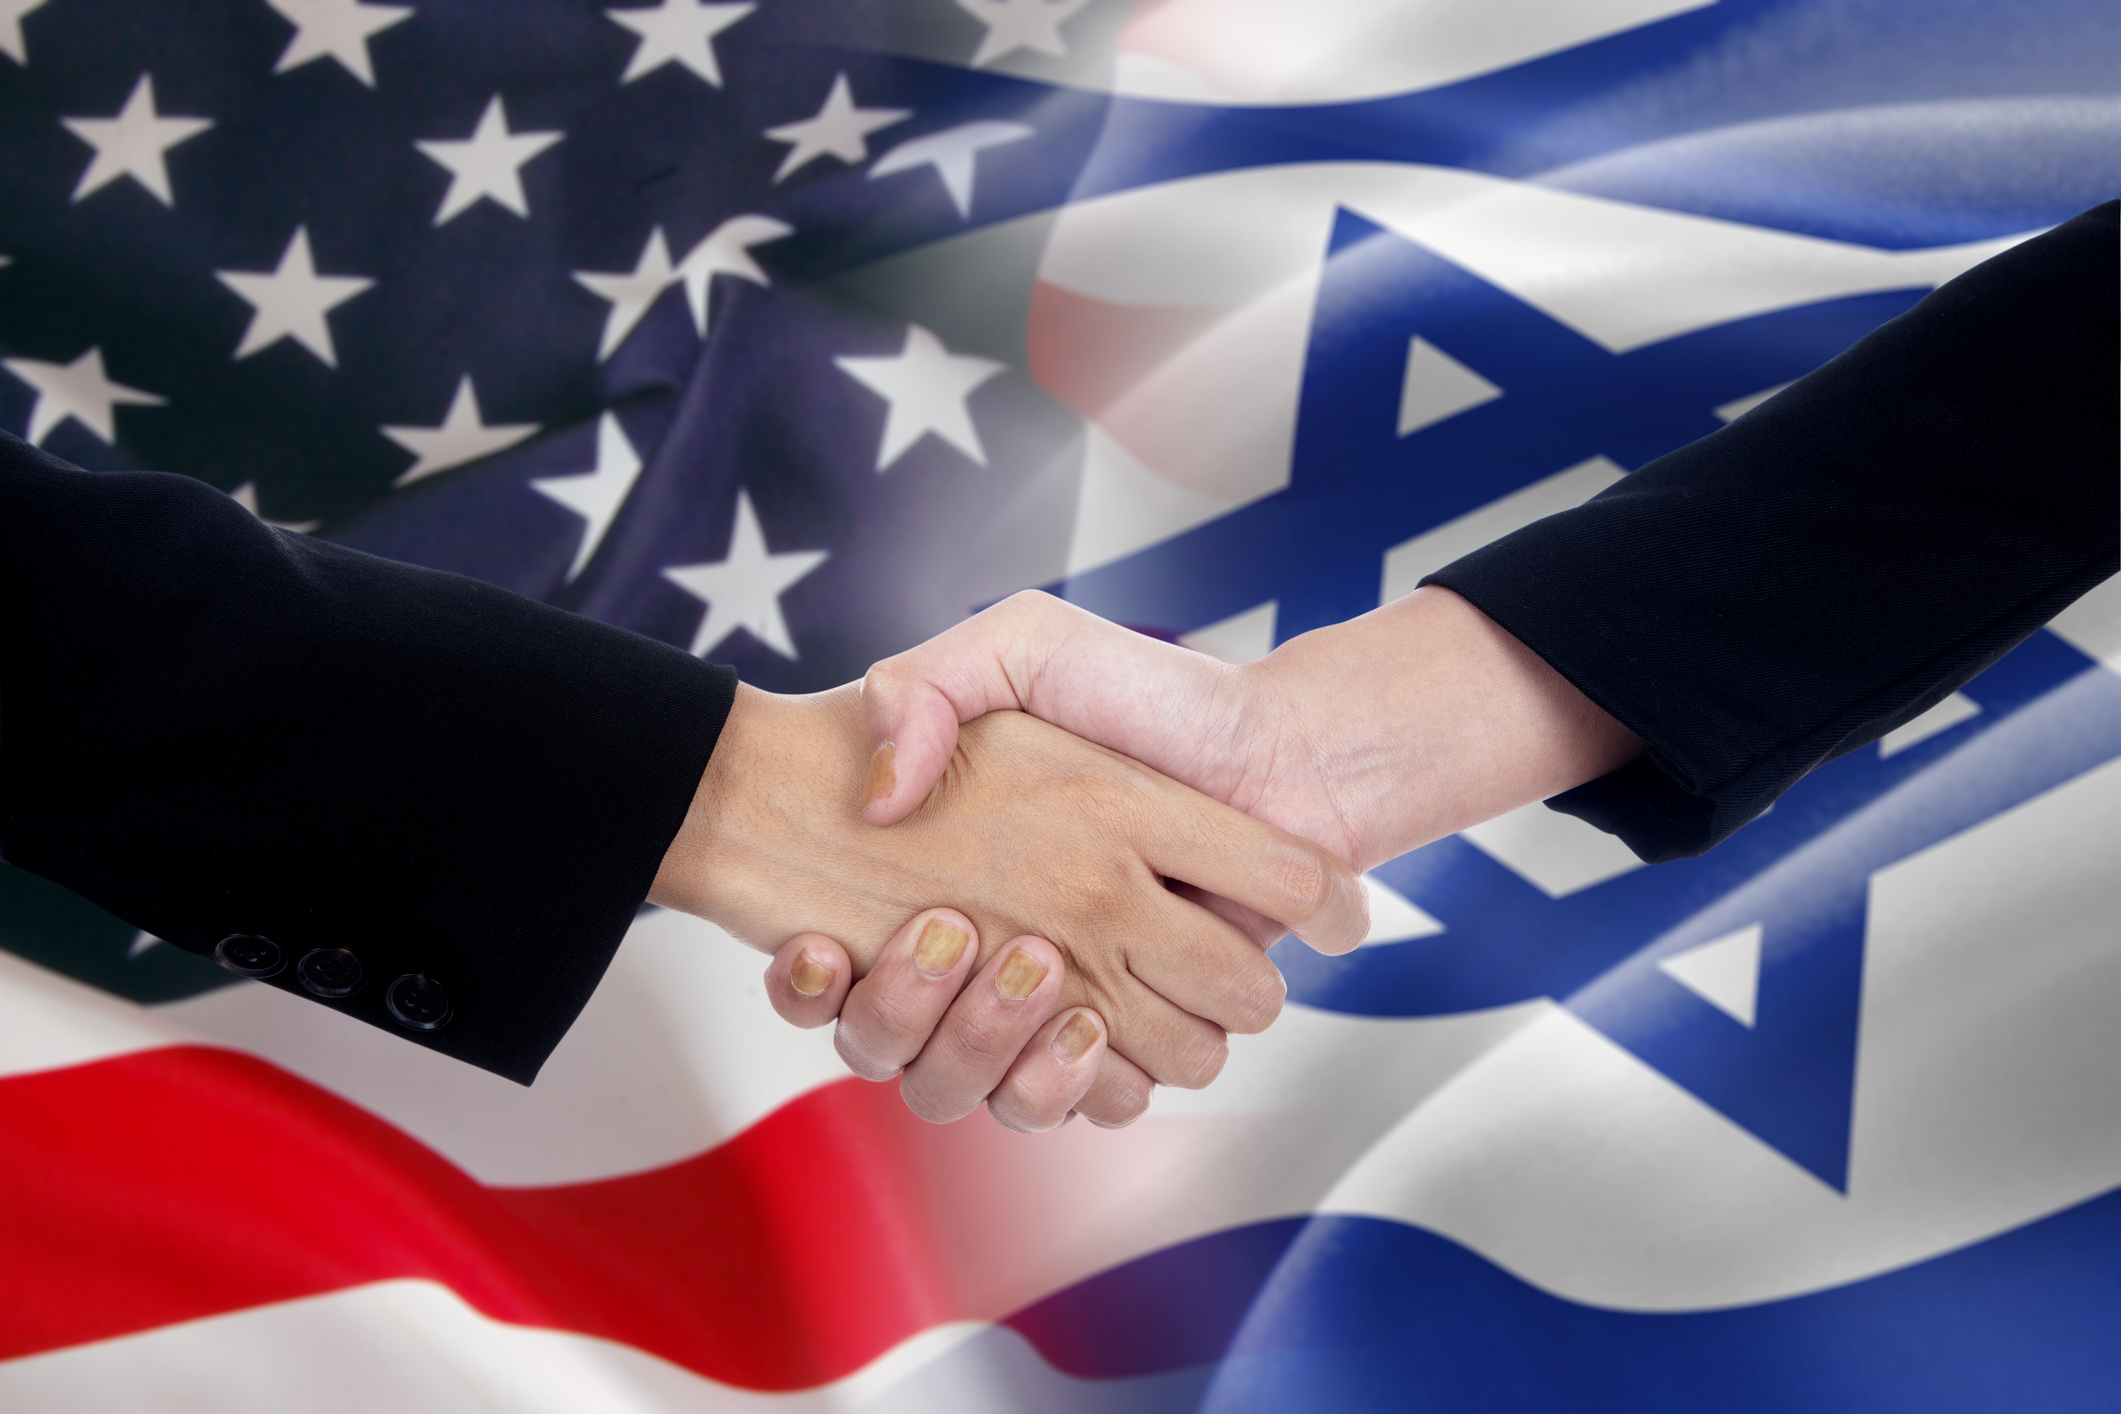 People-handshake-with-the-american-and-israel-flags-486663300_2125x1417.jpeg